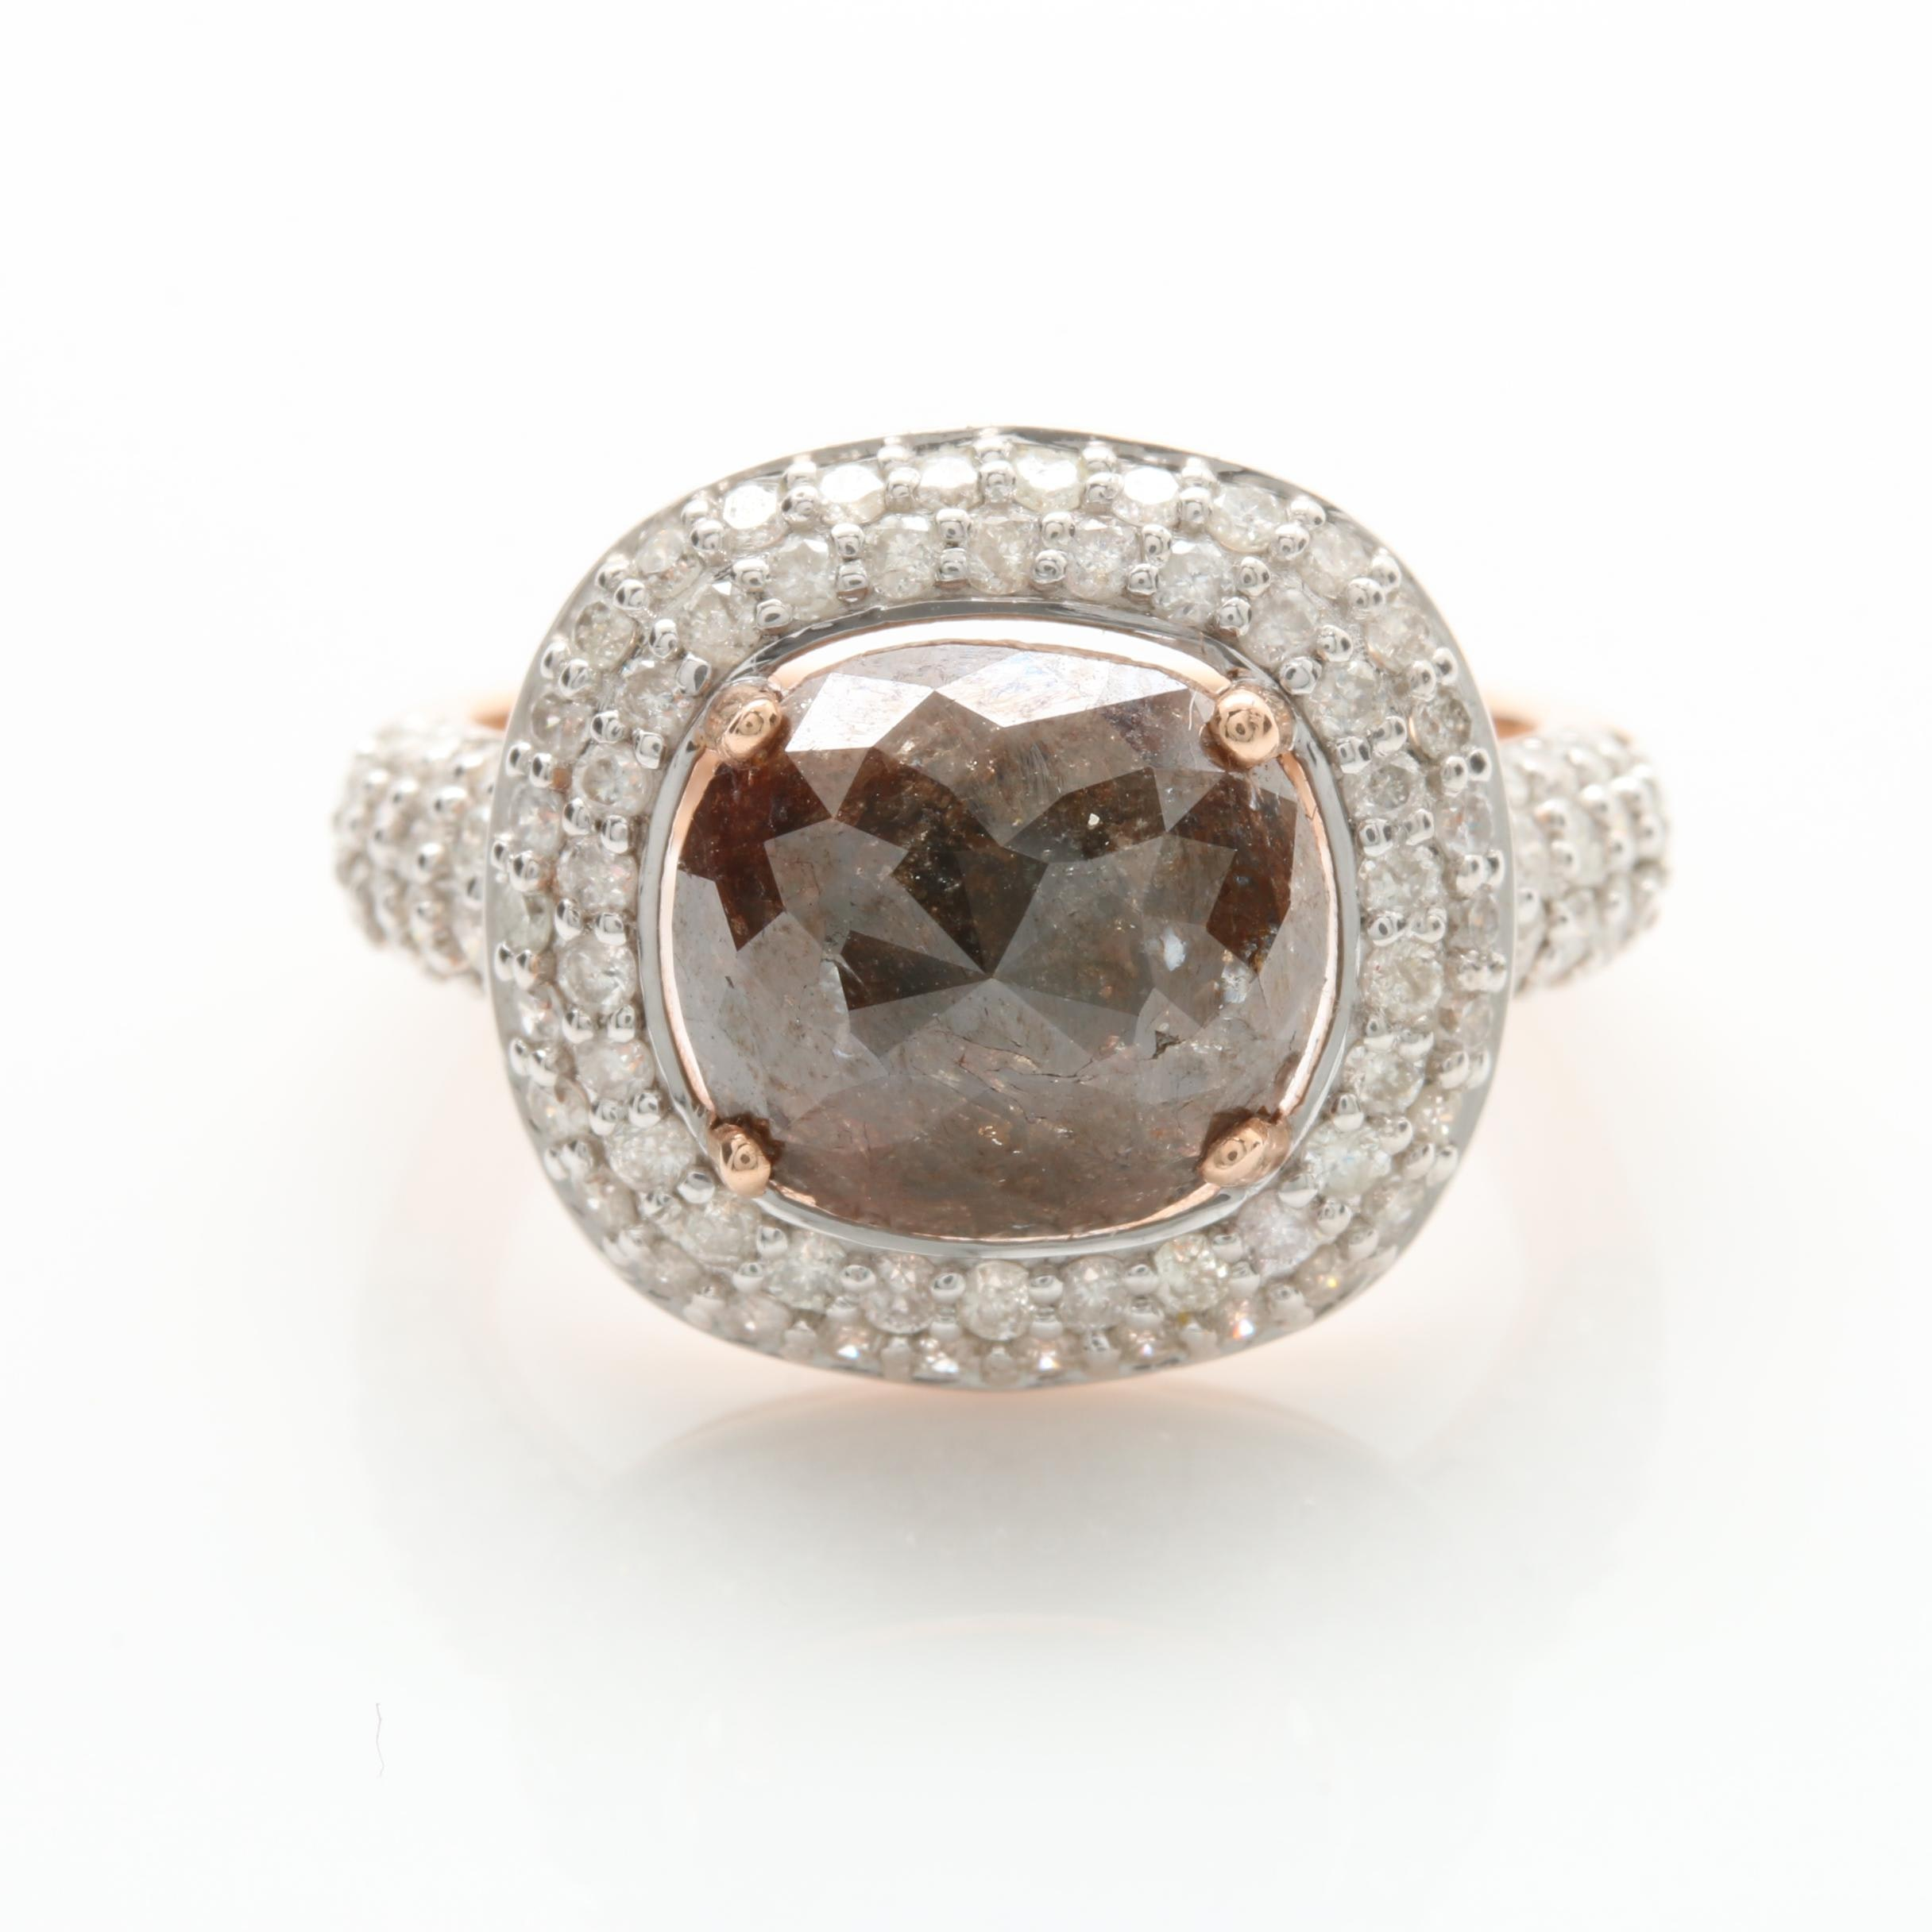 14K Rose Gold 1.72 CTW Diamond Ring